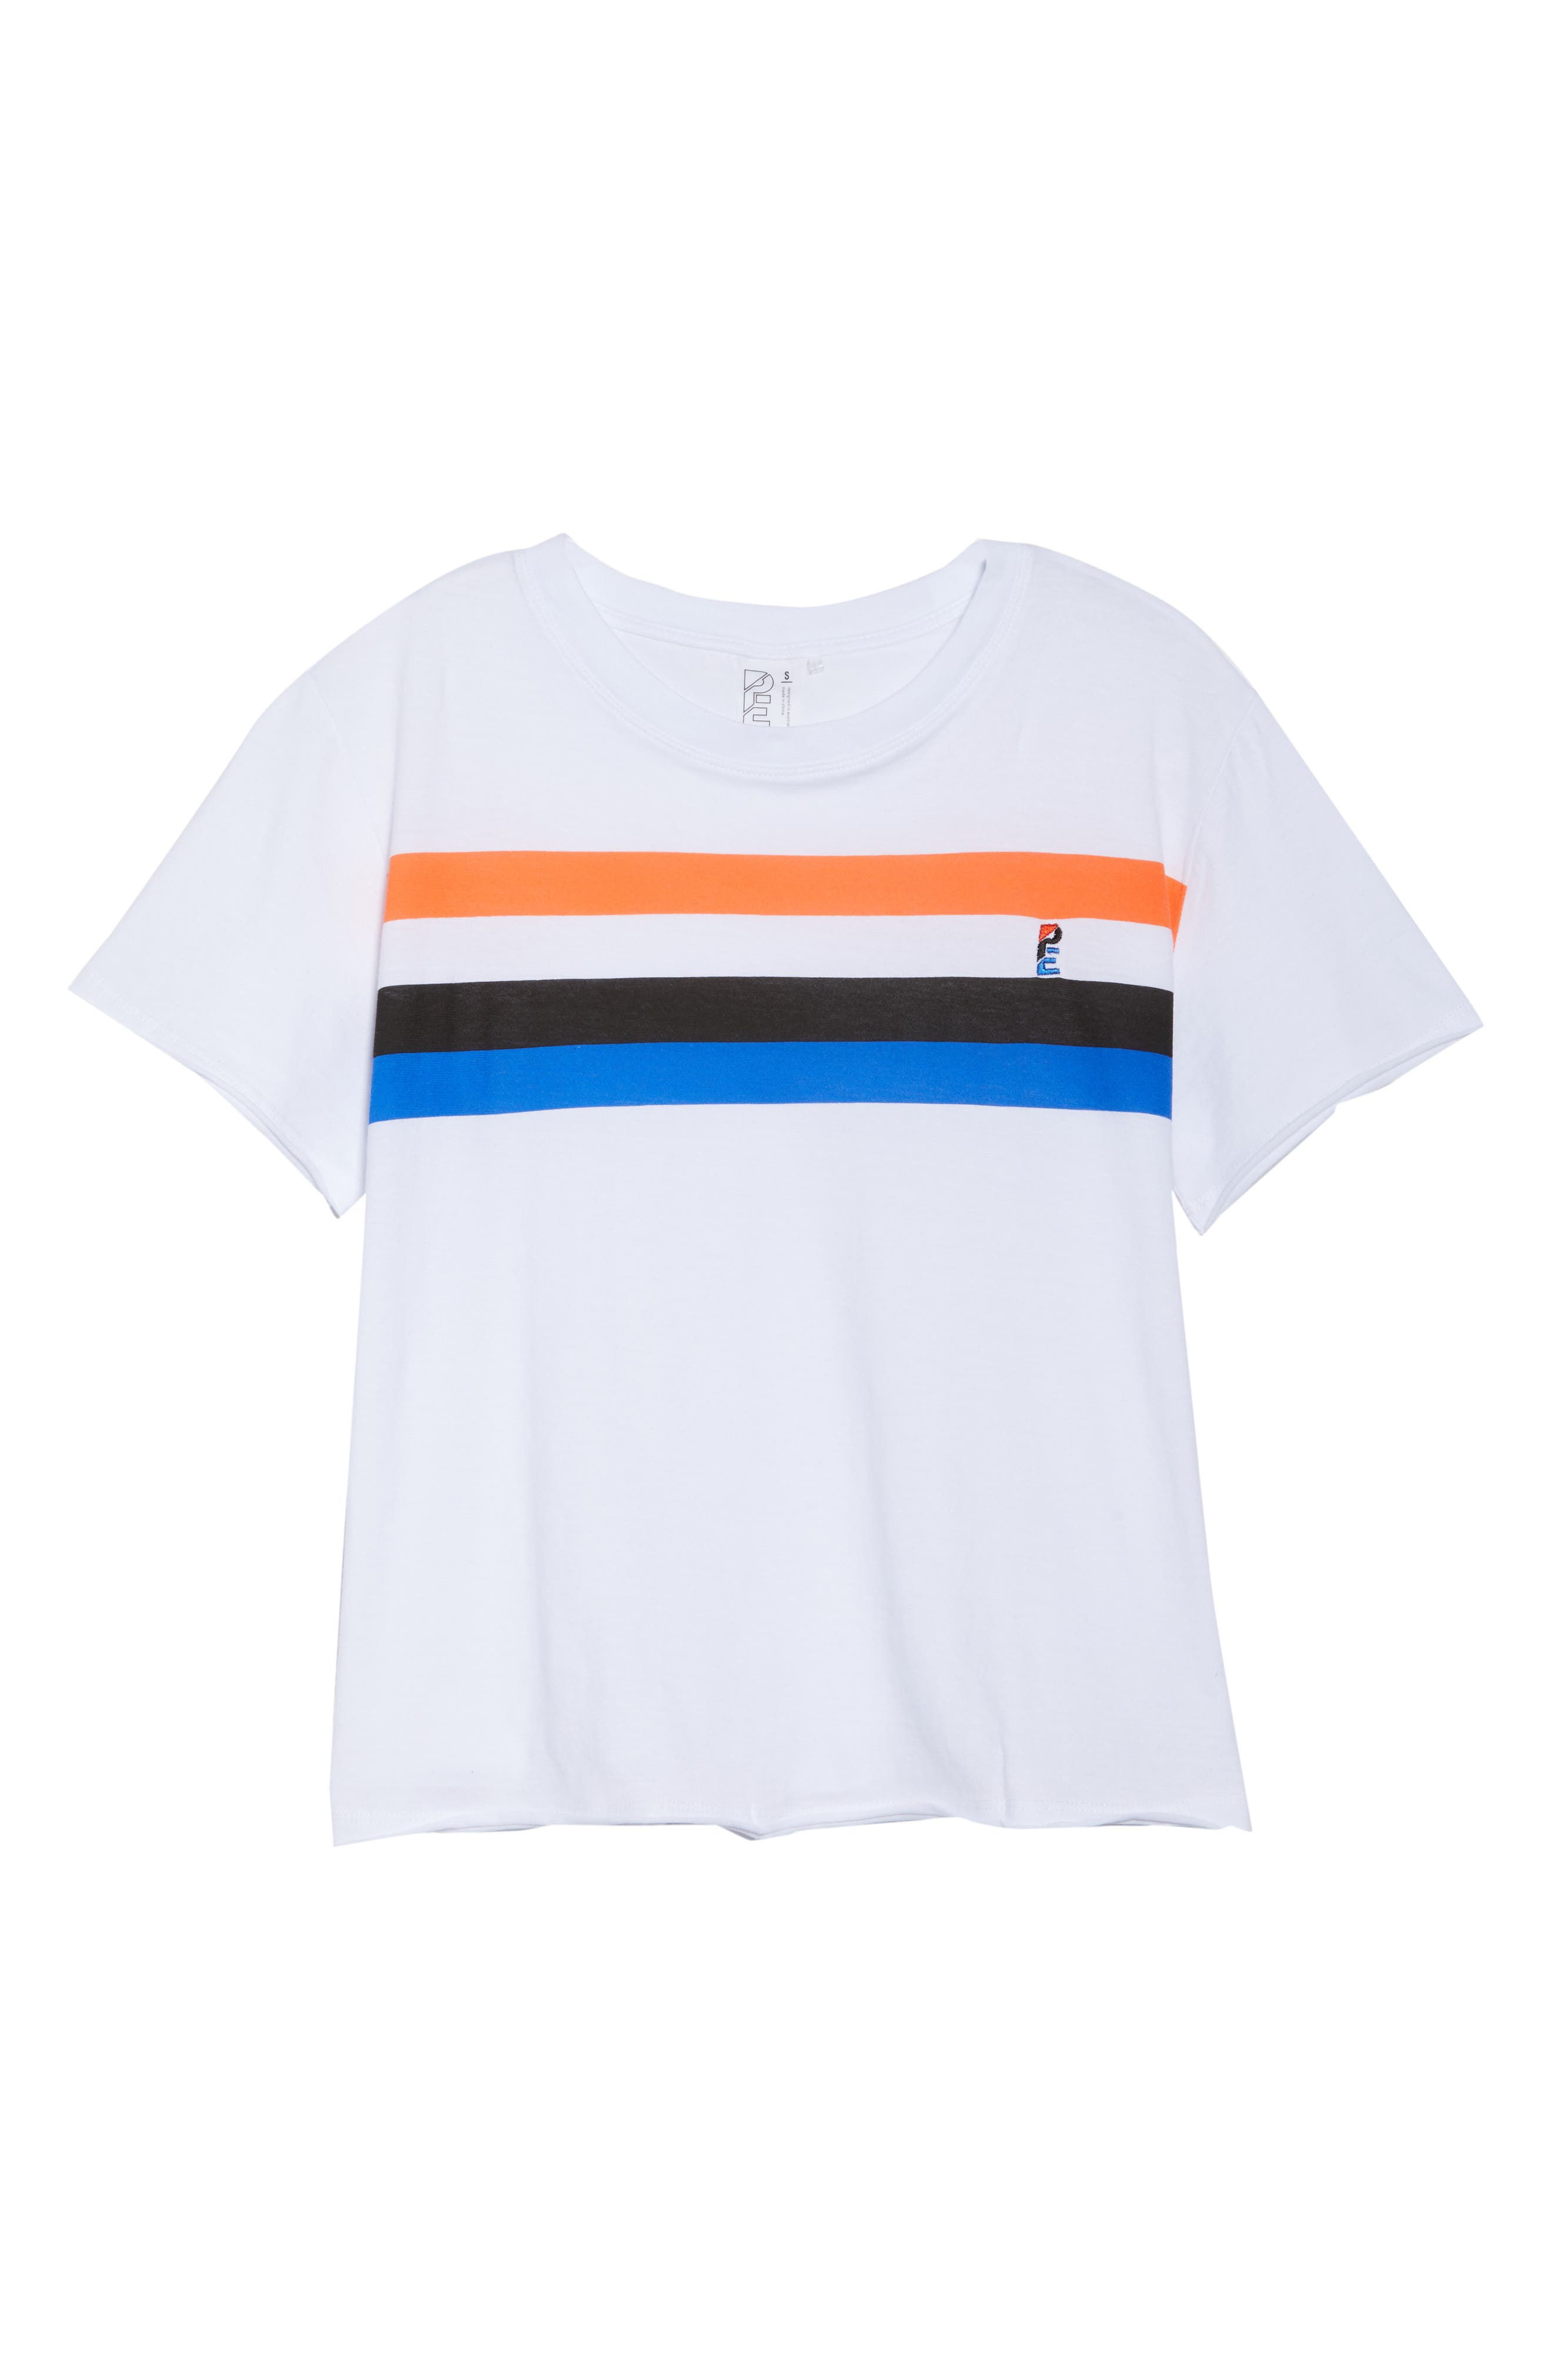 Middle Distance Tee,                             Alternate thumbnail 7, color,                             White